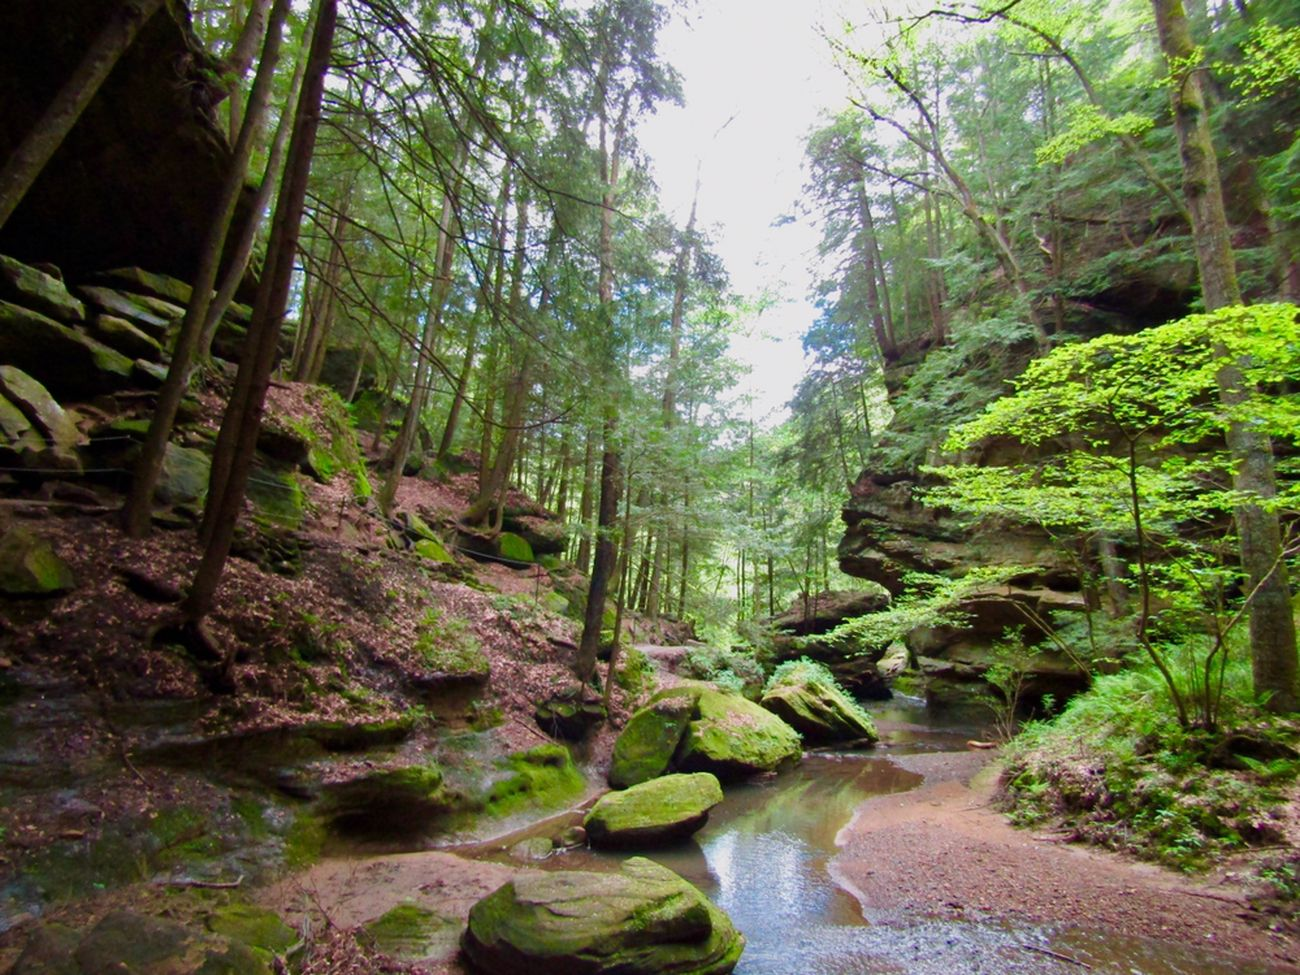 Tranquil Streams, Hocking Hills